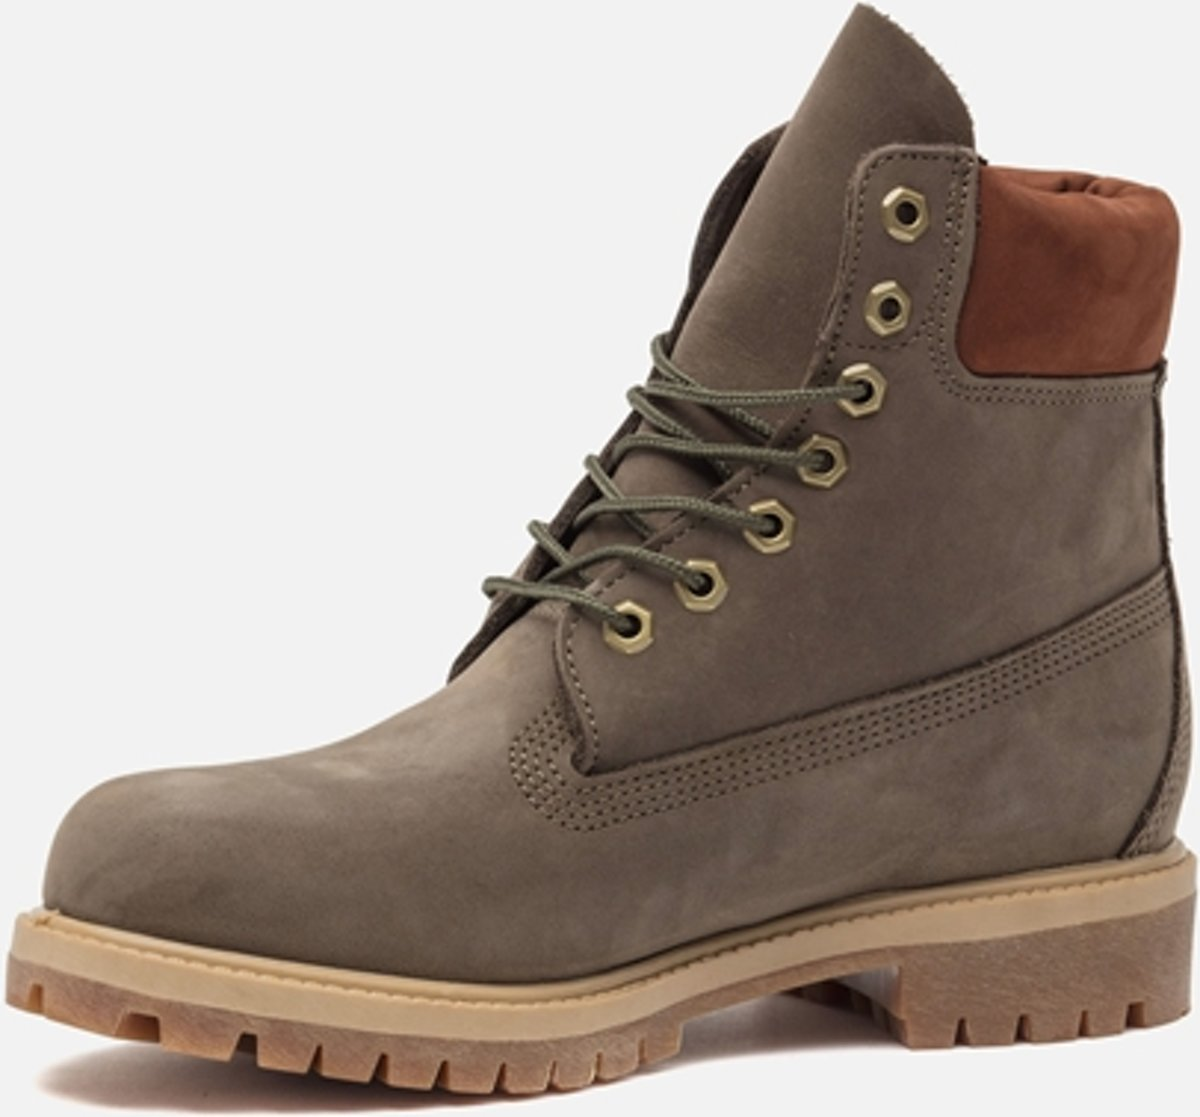 Timberland - 6 Bateau Premium - Chaussures De Marche Robustes - Hommes - Taille 44,5 - Vert - Waterbuck Cantine